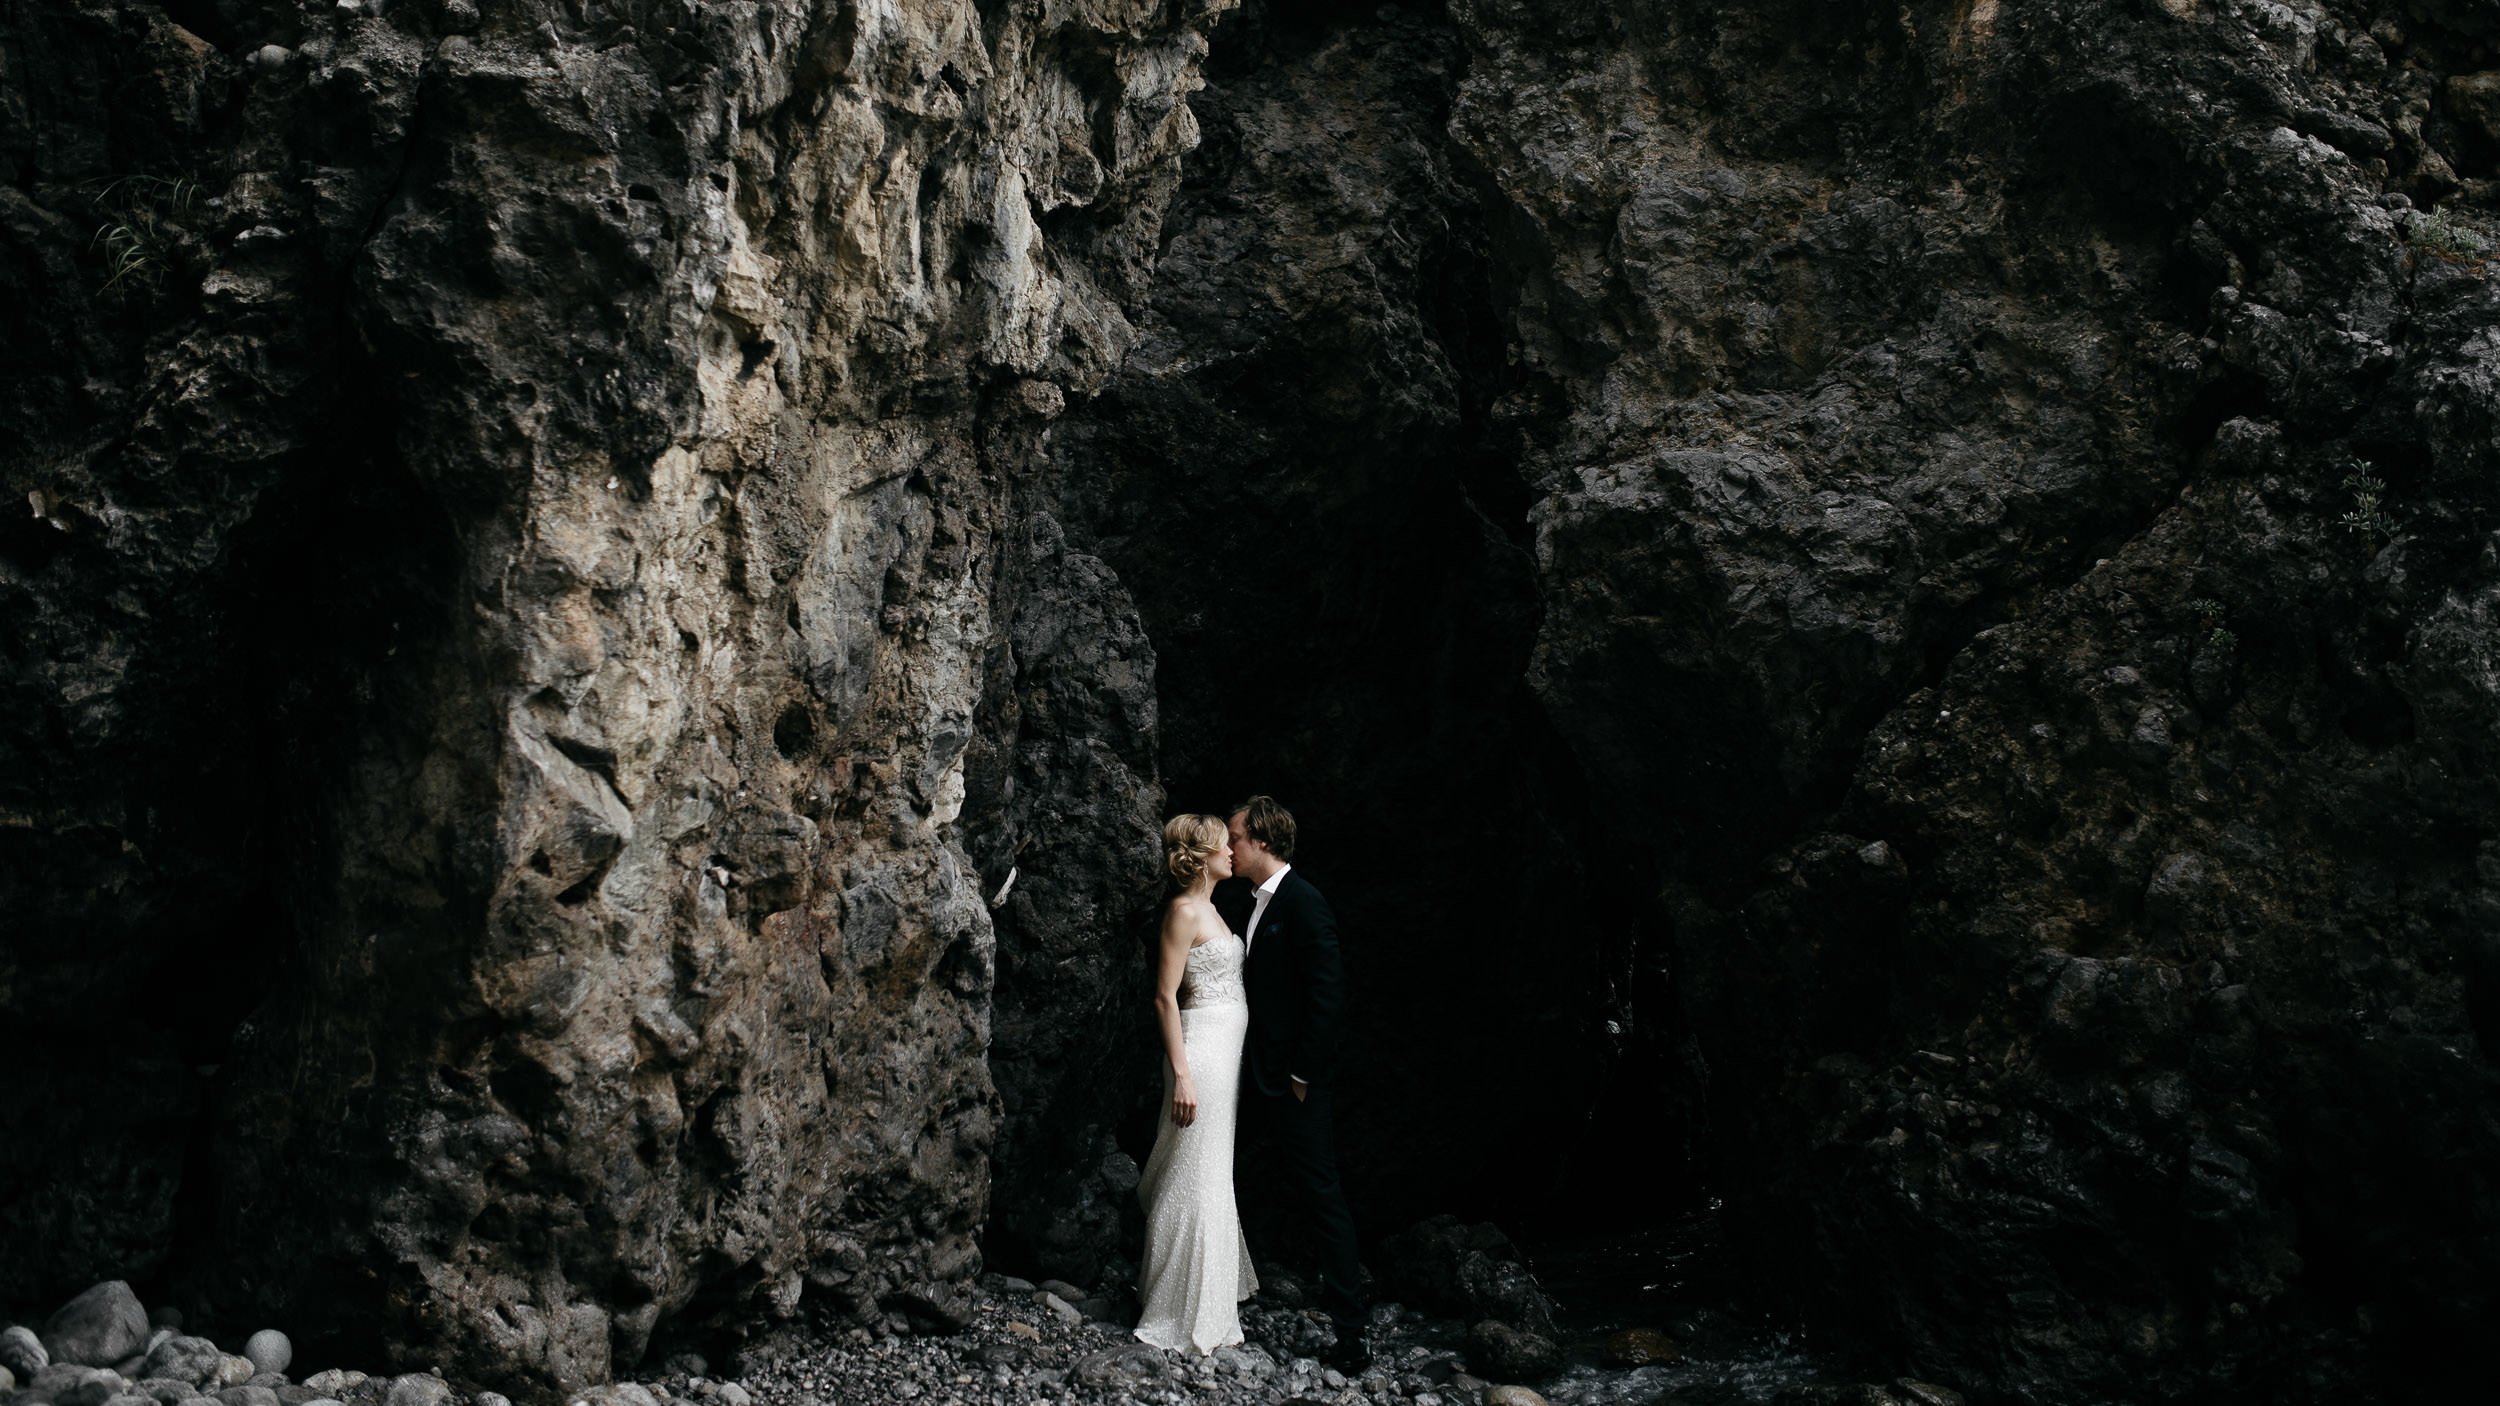 Jean-Laurent Gaudy, Badlands Destination Wedding Elopement Photographer.